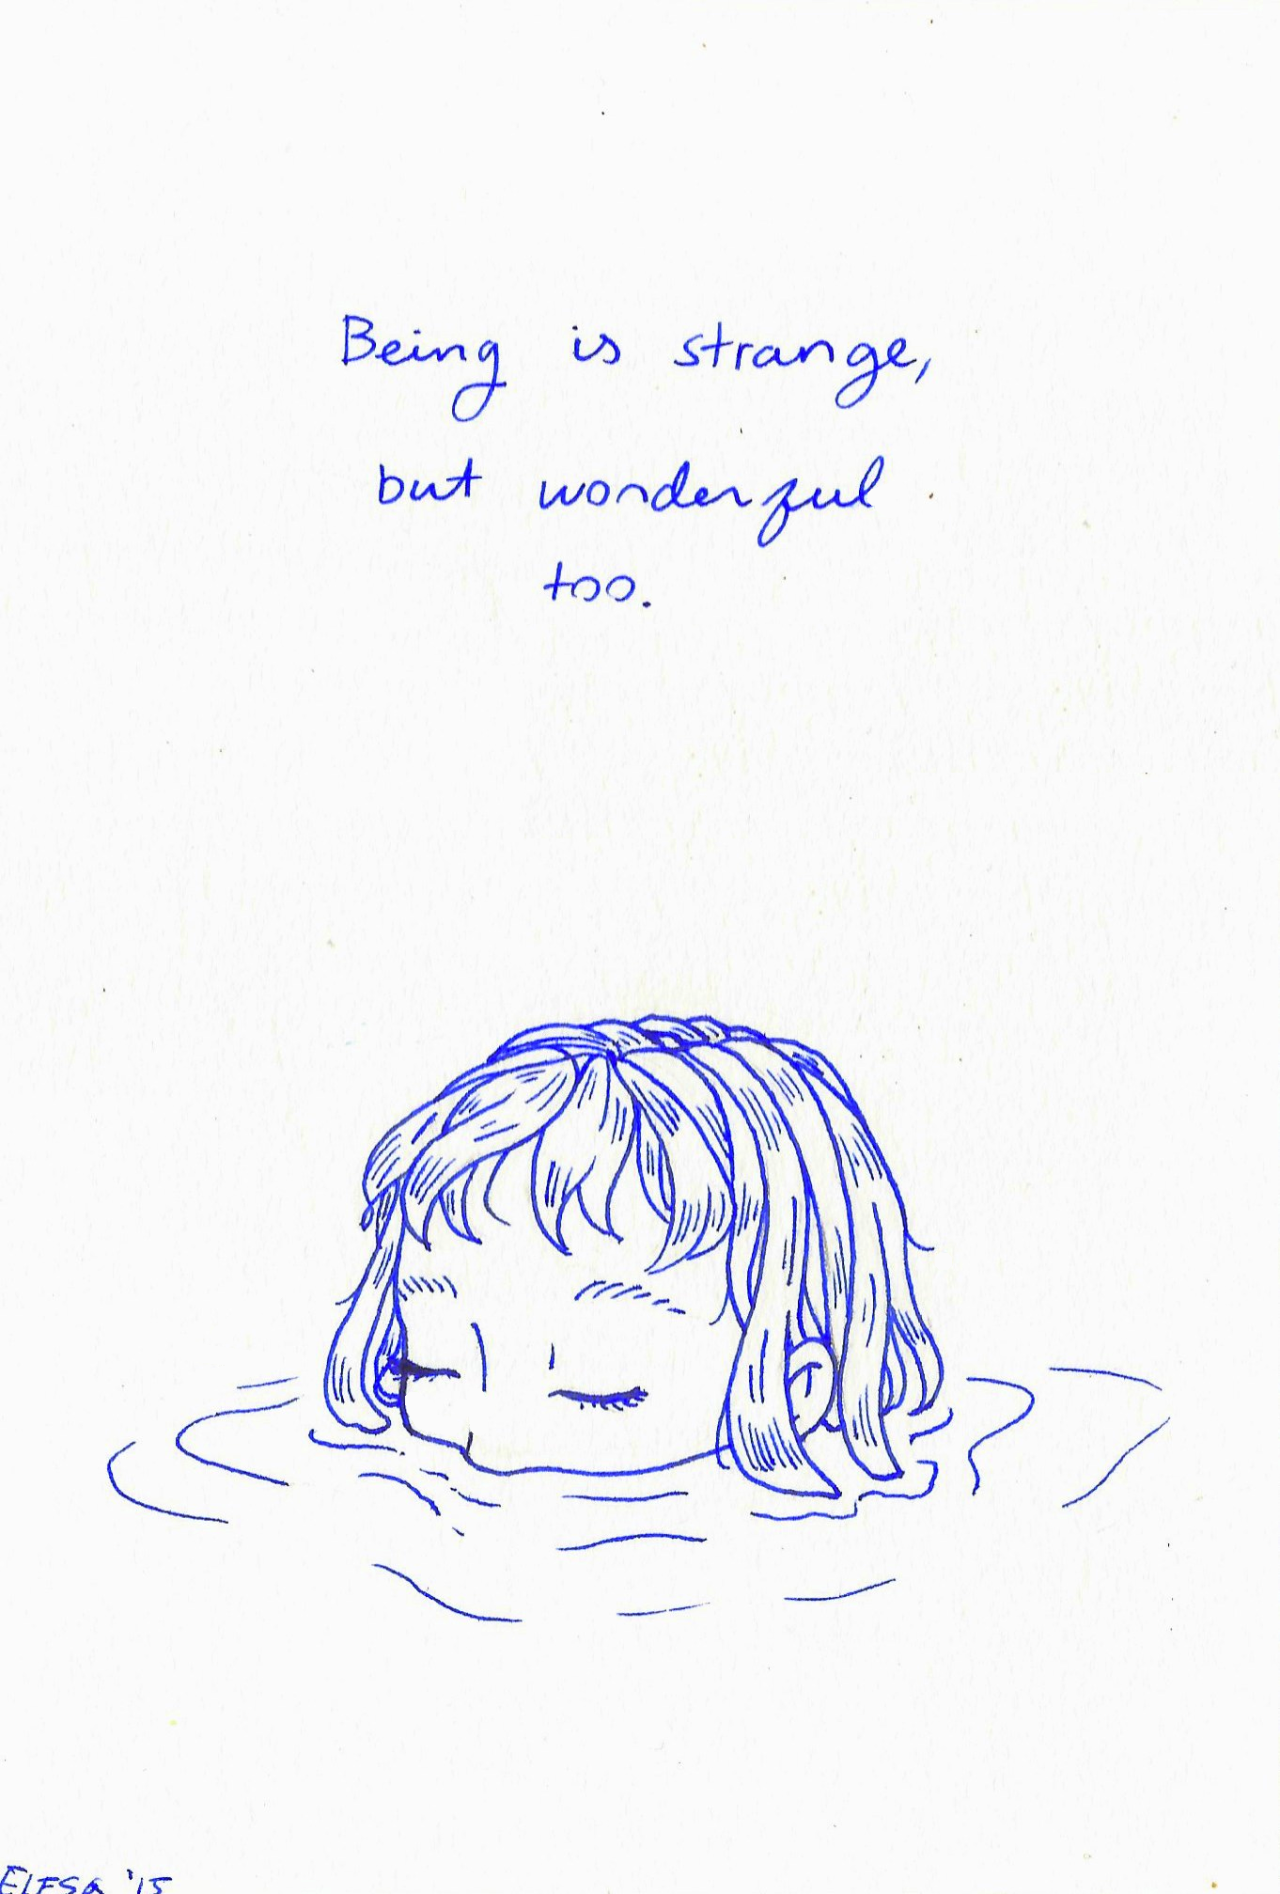 """ebriosity :     6.25.15 - journal """"Being is strange, but wonderful too""""   There's more strangeness than sadness these days. I'm glad.    (Please don't remove my caption)"""